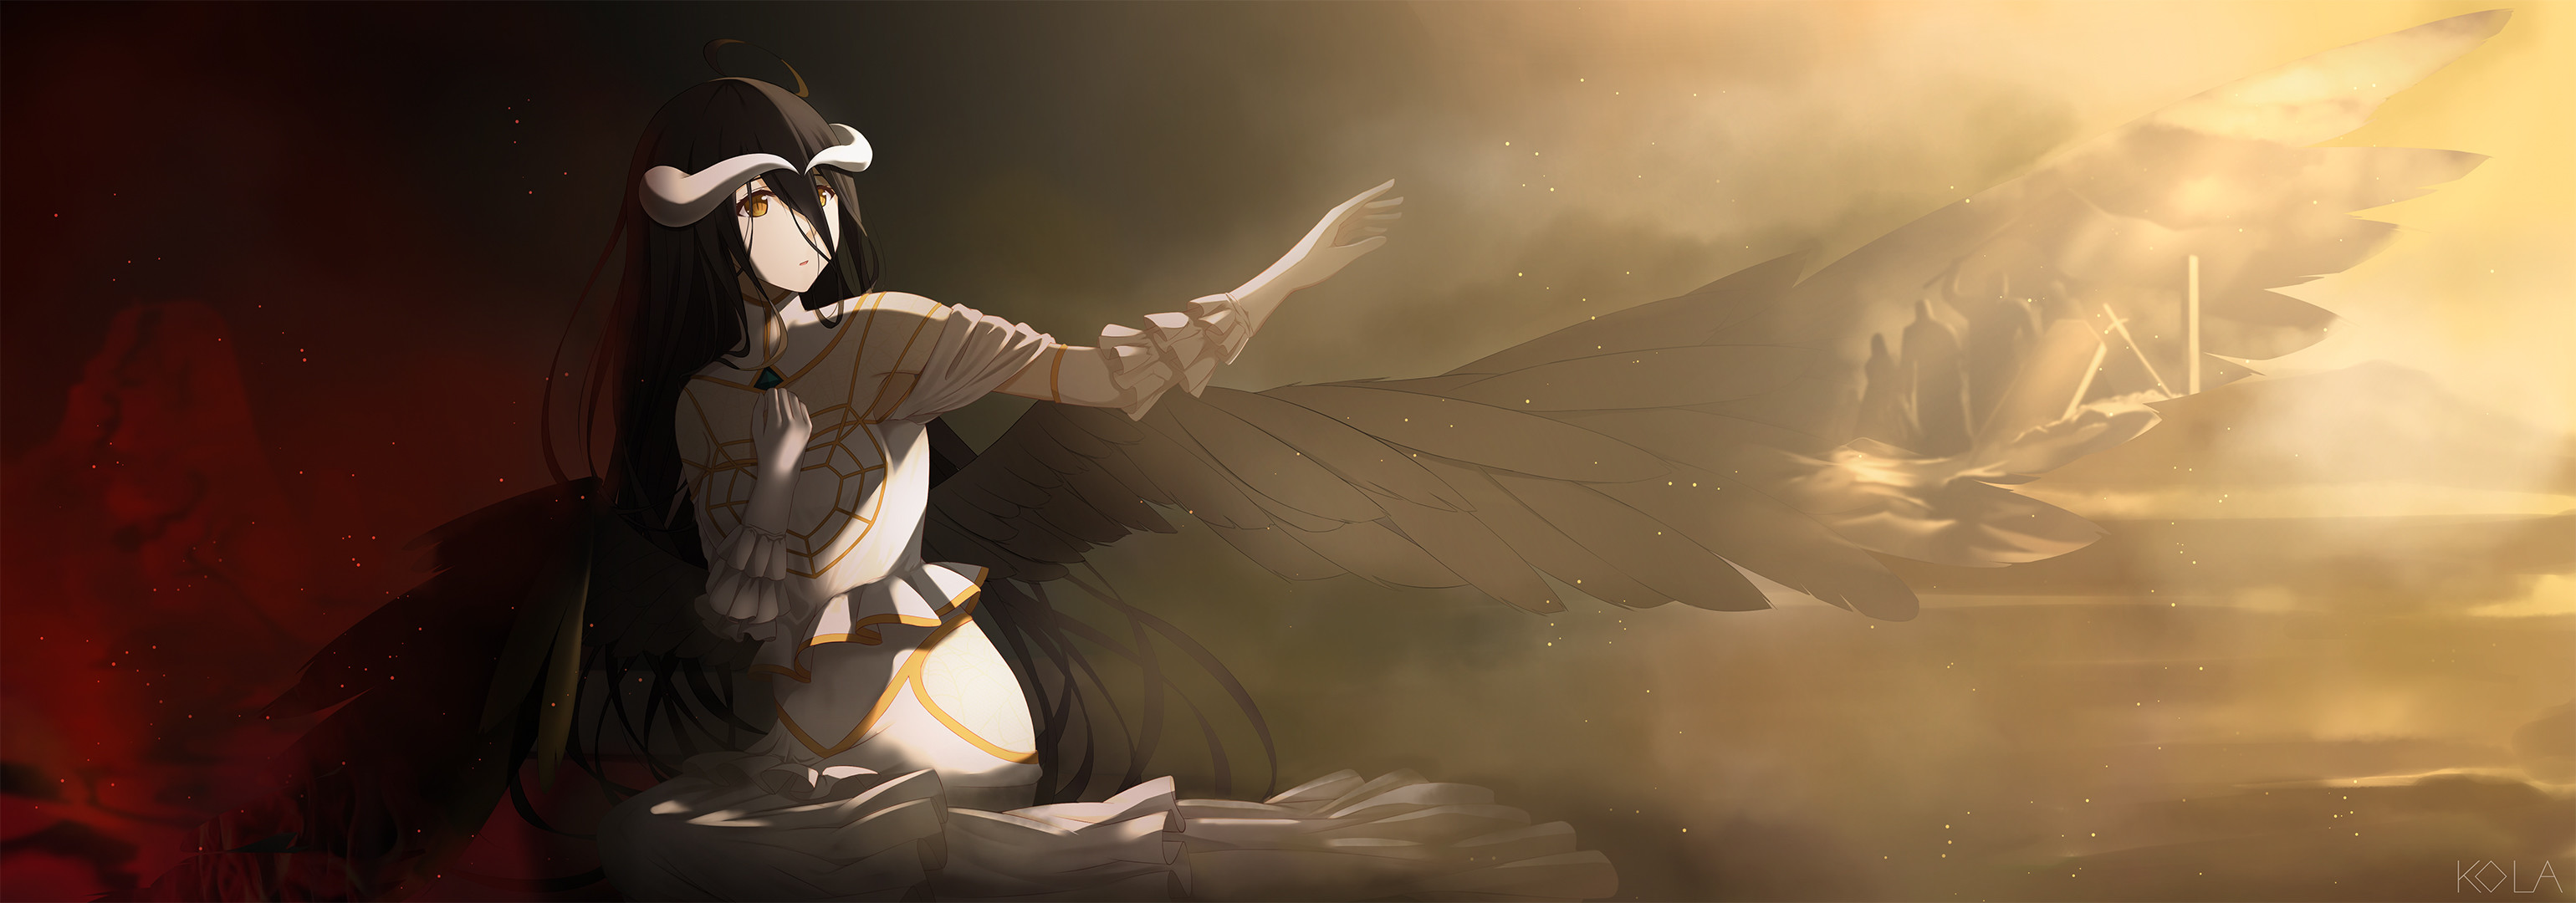 Res: 3080x1080, Albedo (Overlord) download Albedo (Overlord) image